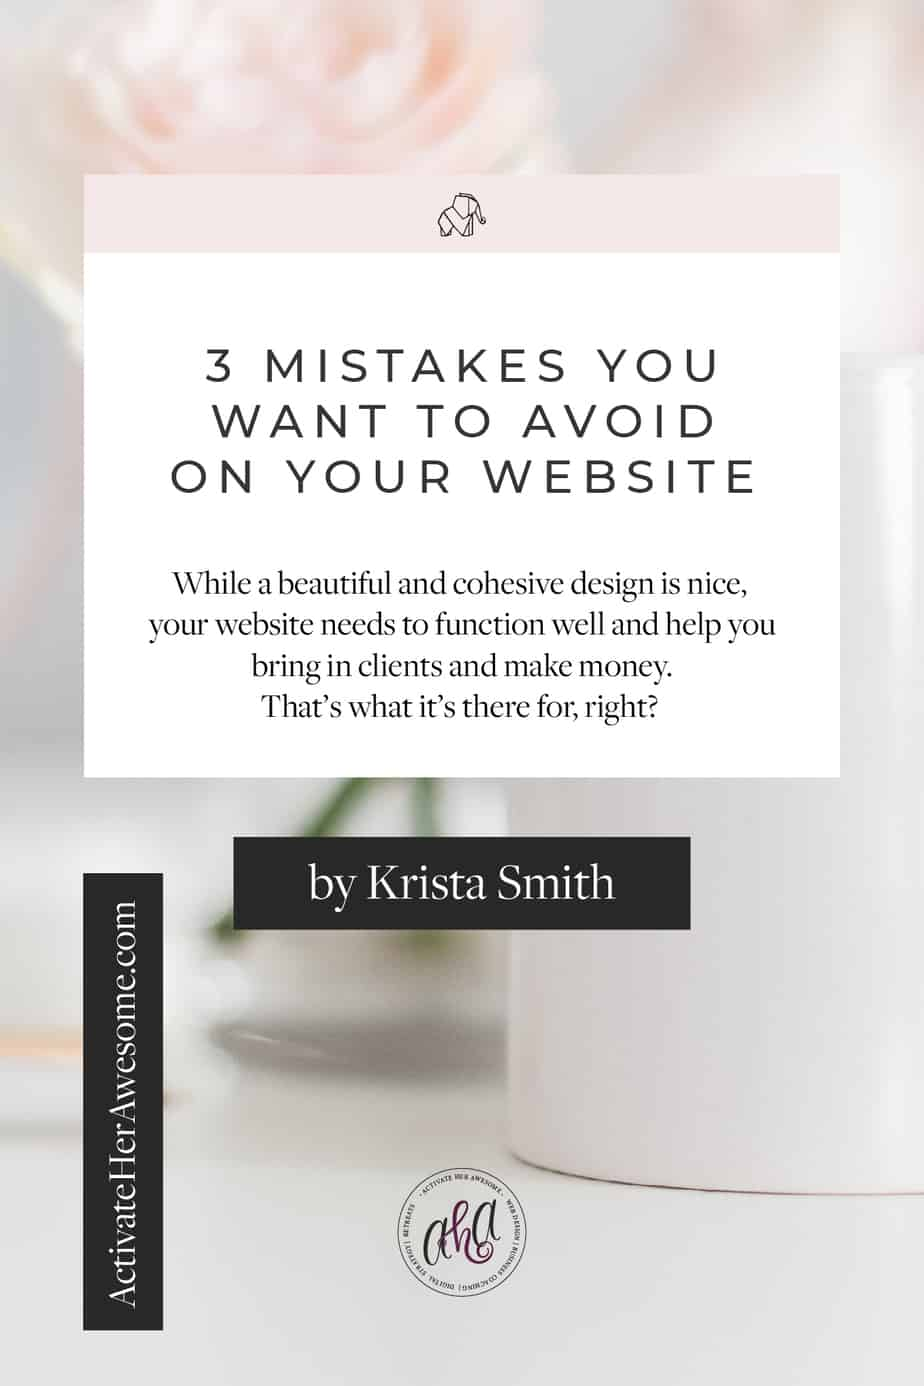 3 Mistakes you Want To Avoid Making on Your Website - While a beautiful and cohesive design is nice, your website needs to function well and help you bring in clients and make money. That's what it's there for, right? via Krista Smith at ActivateHerAwesome.com